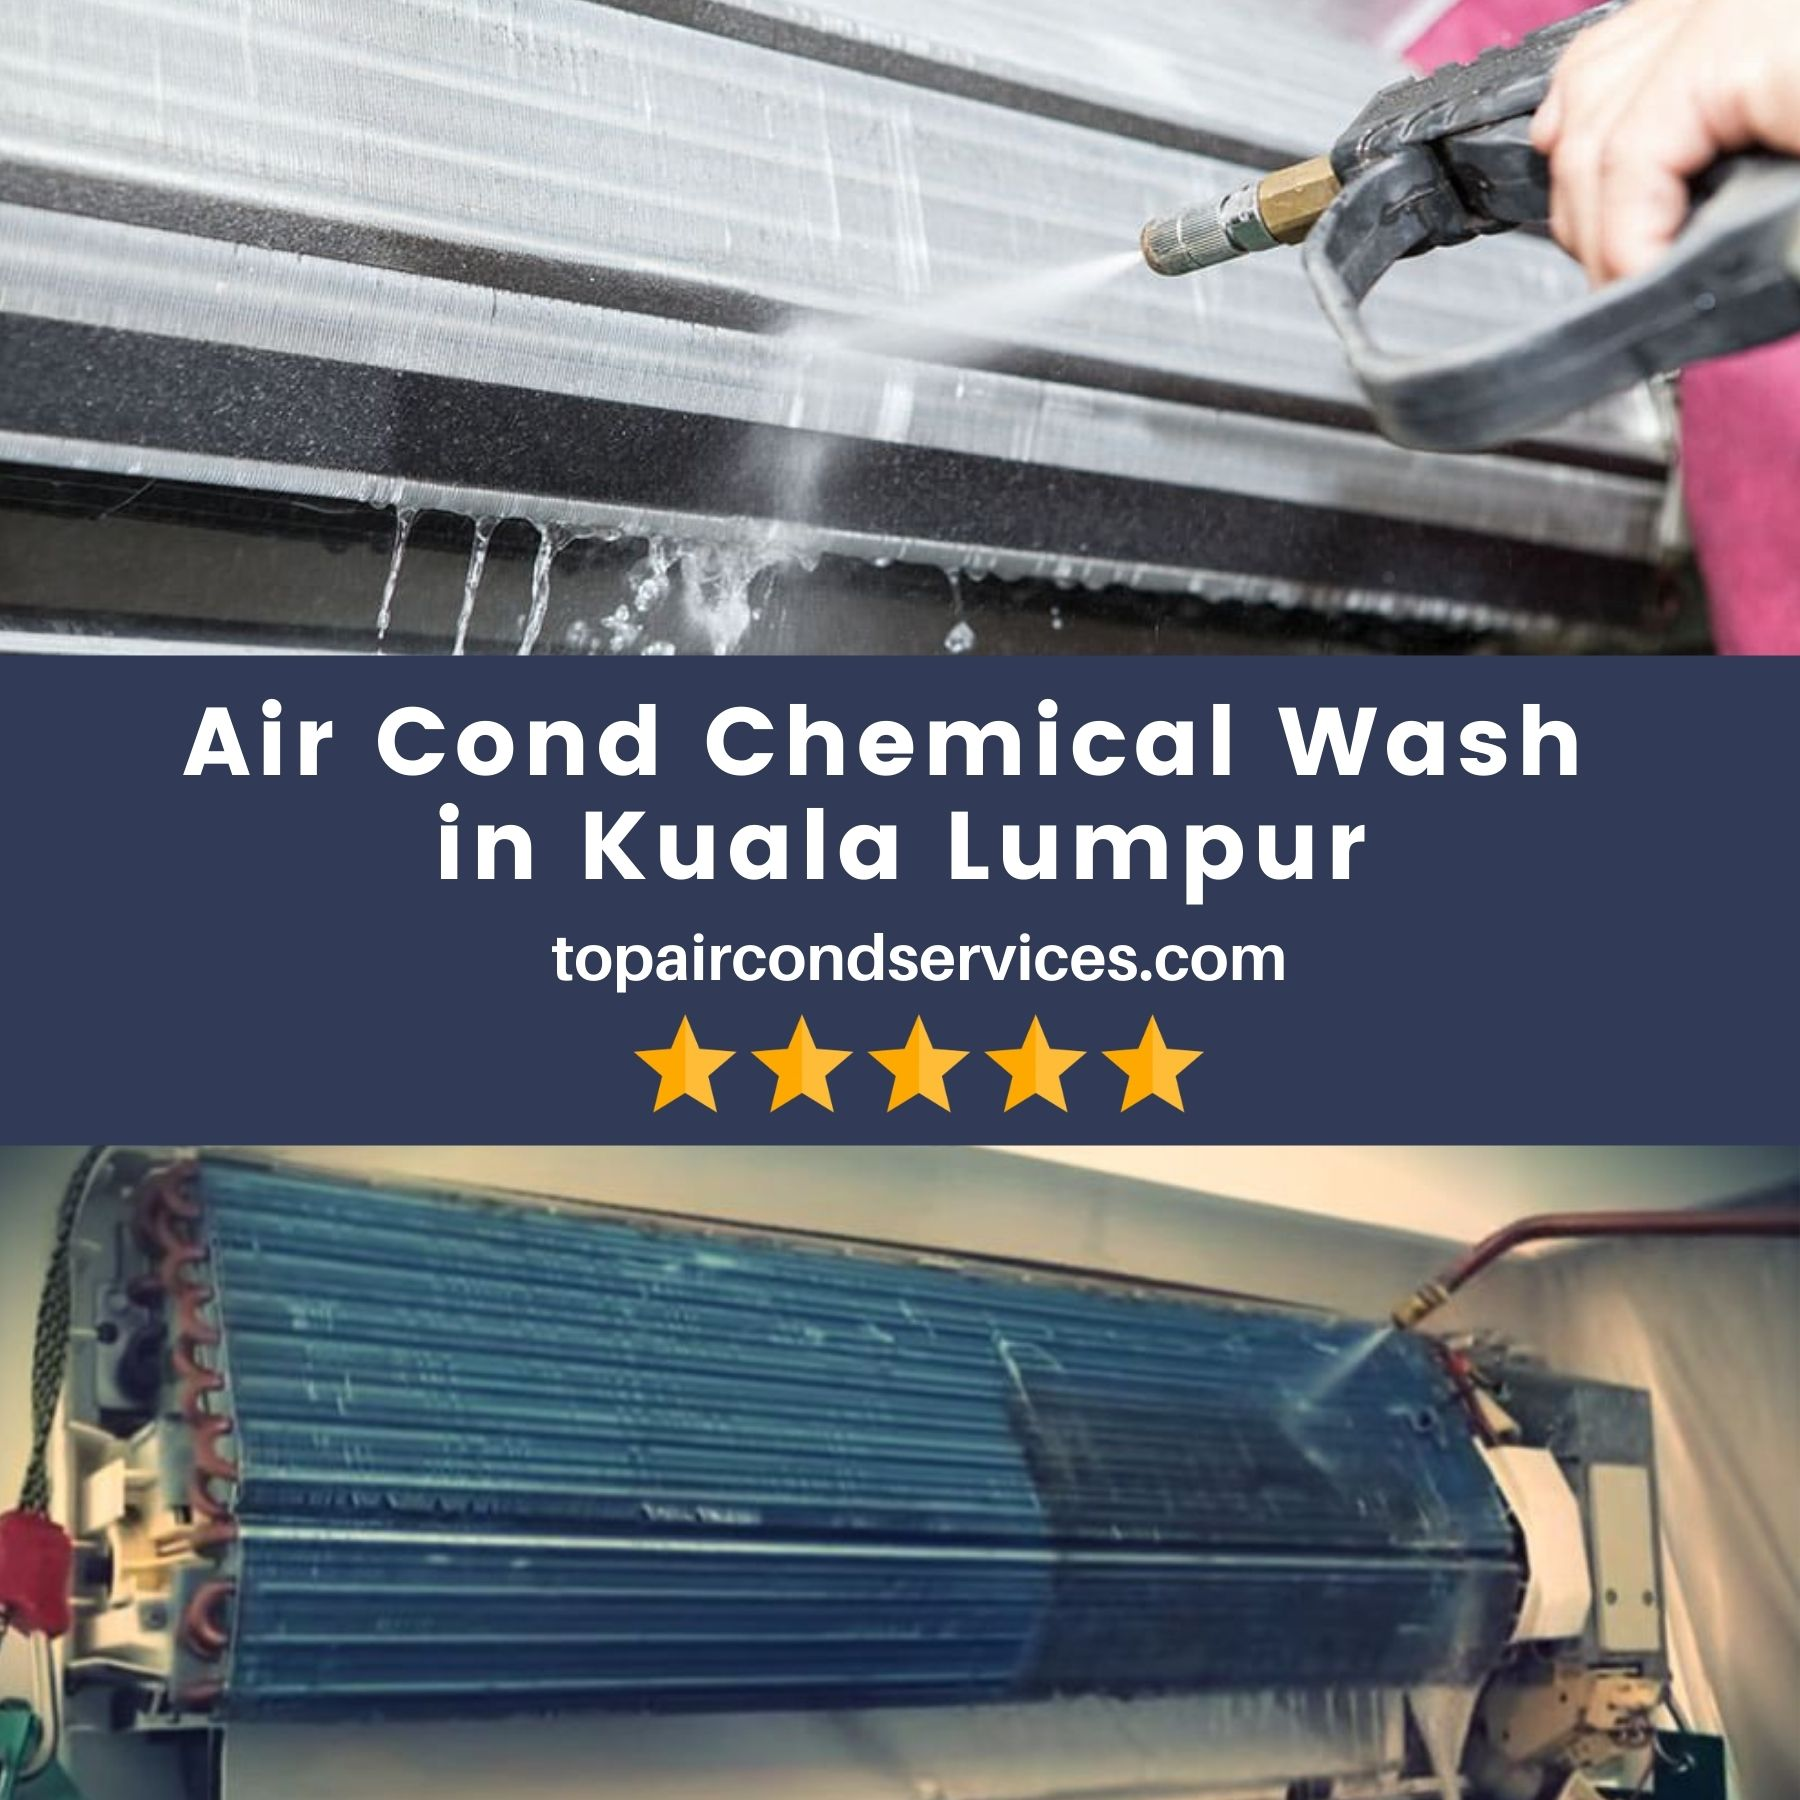 AirCond Chemical Wash KL